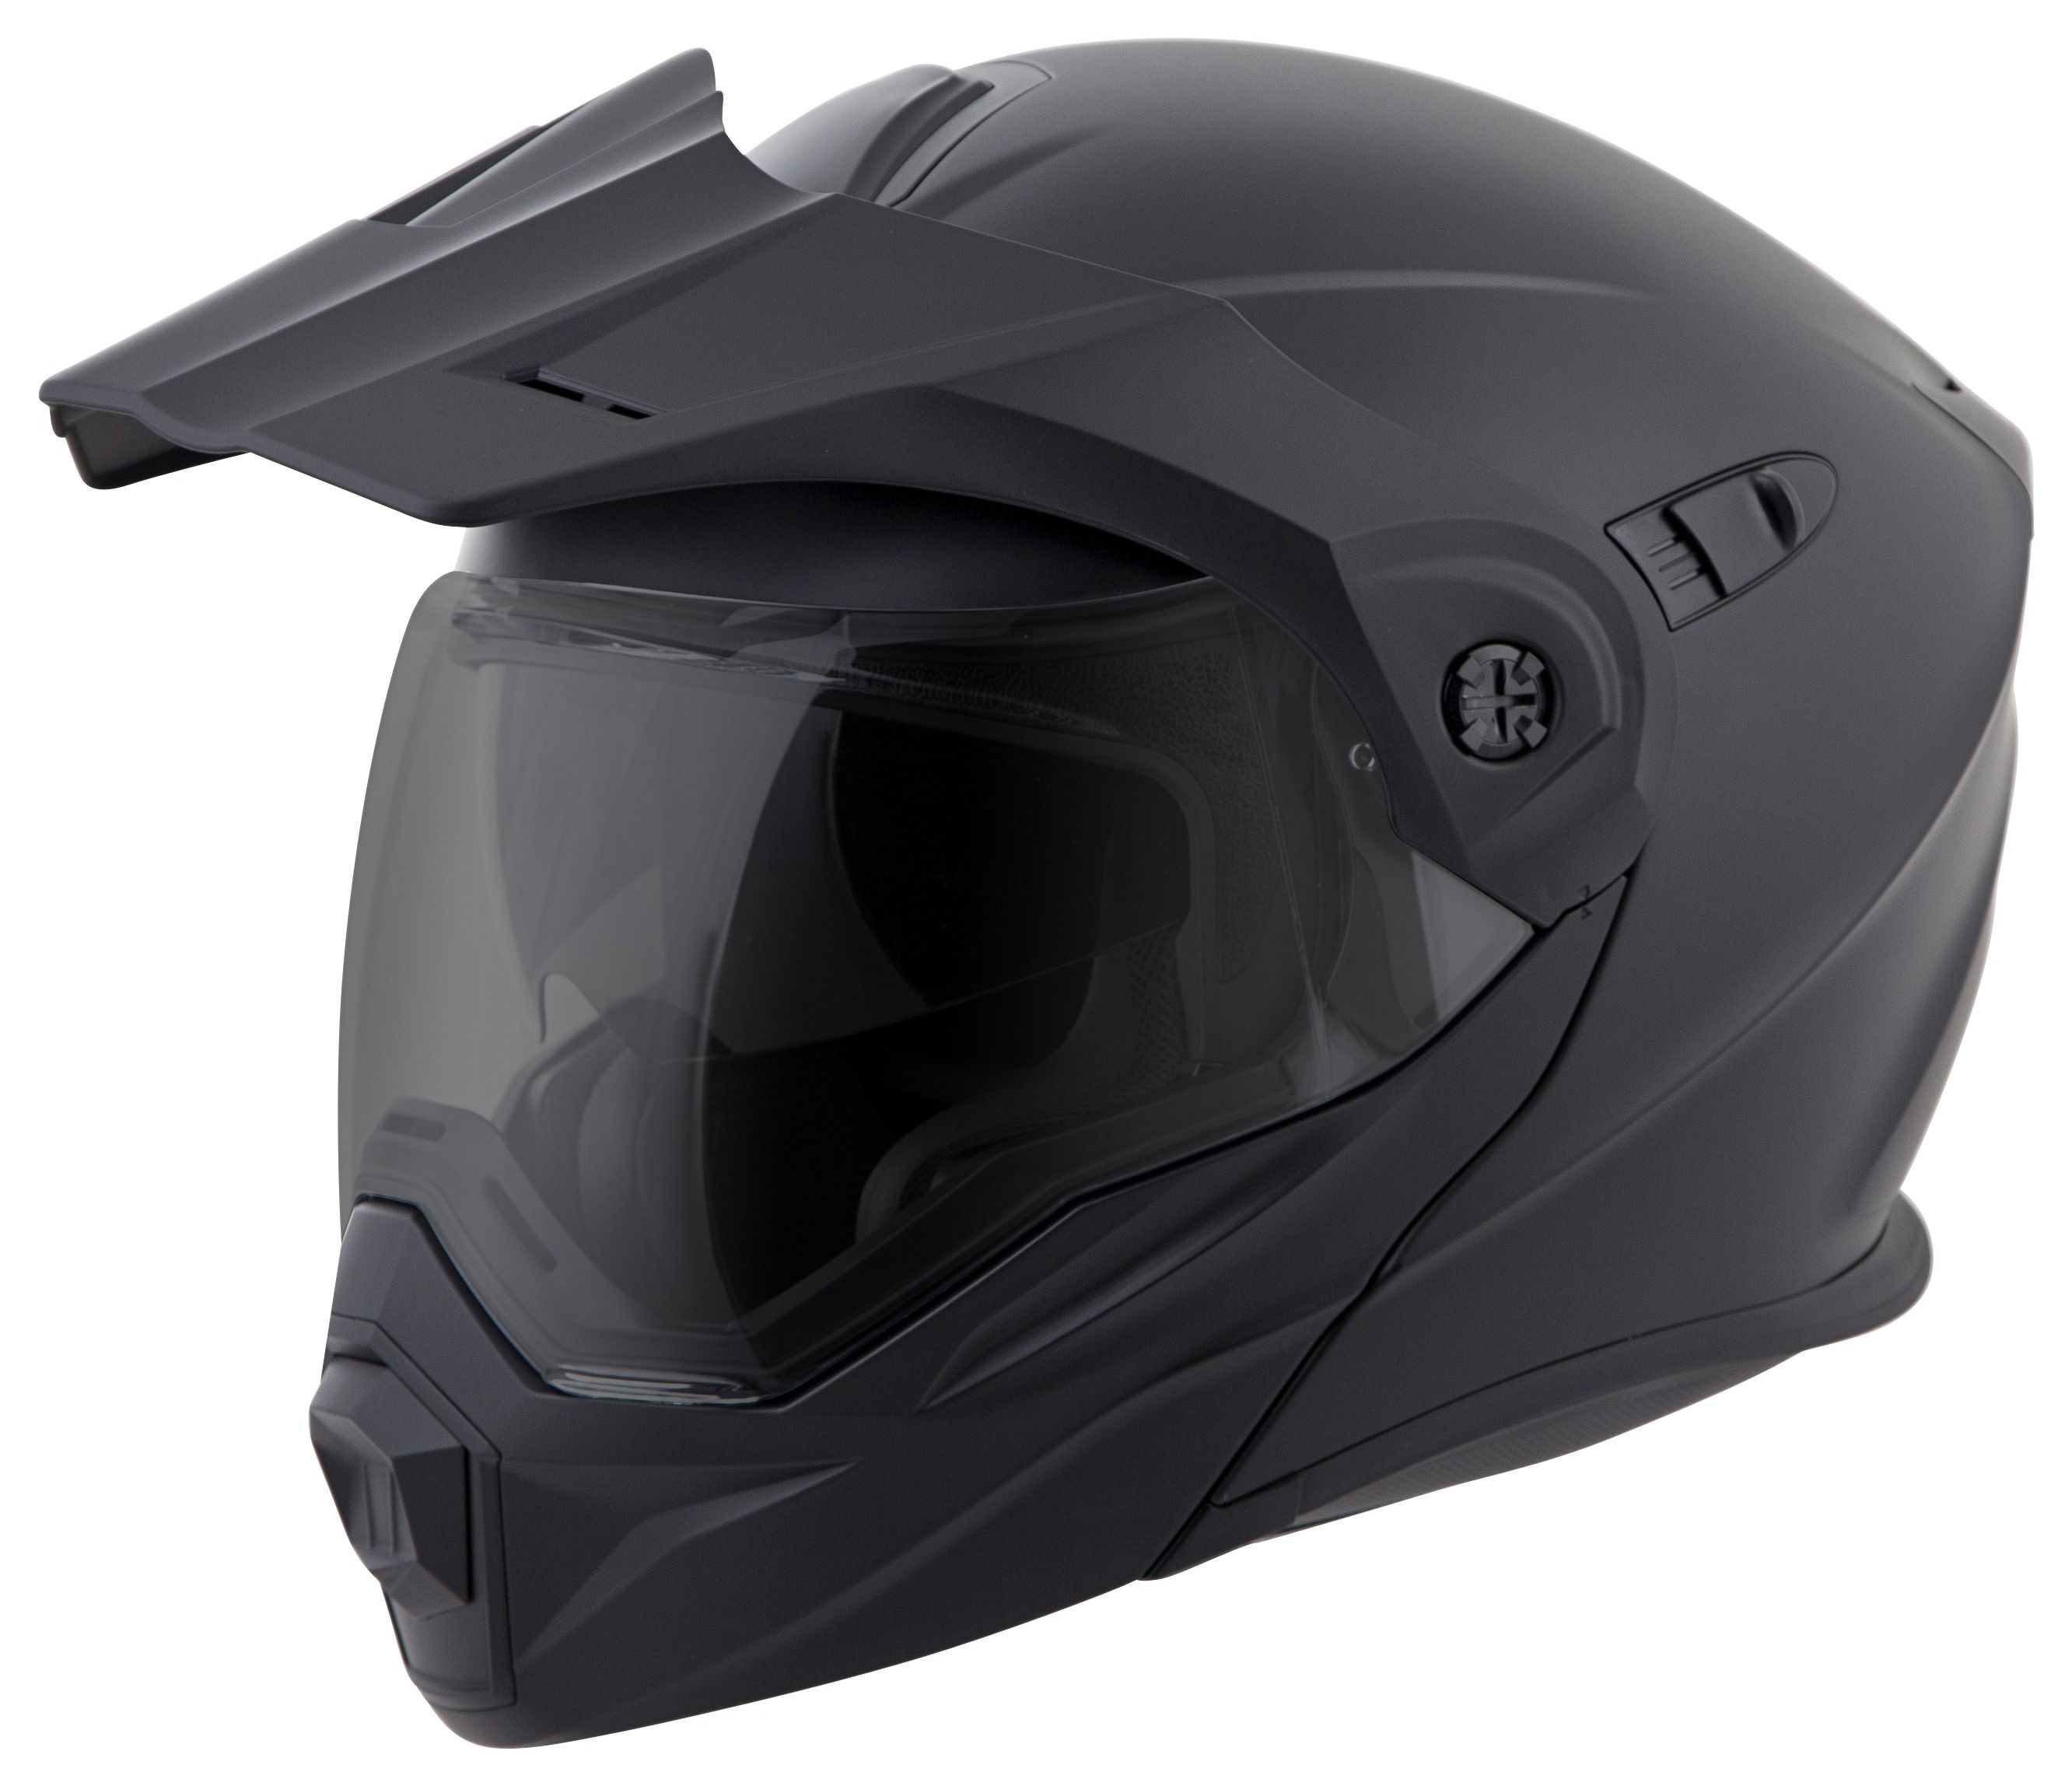 Scorpion Exo At950 Helmet Revzilla